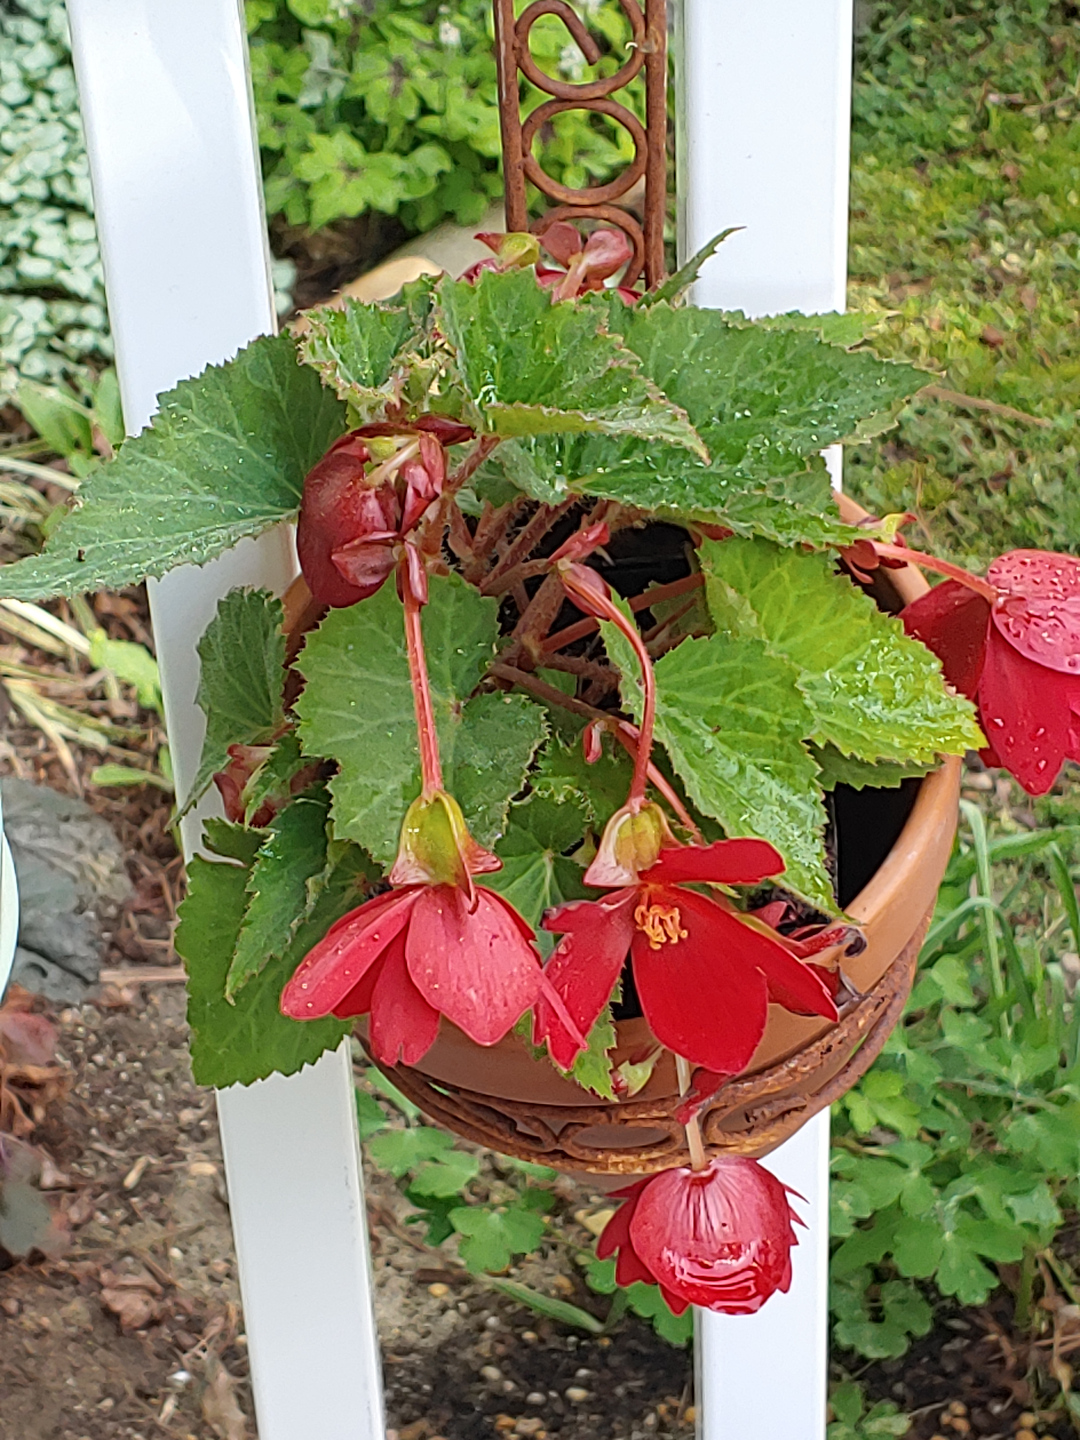 A begonia with large red flowers in a pot hanging from a white fence